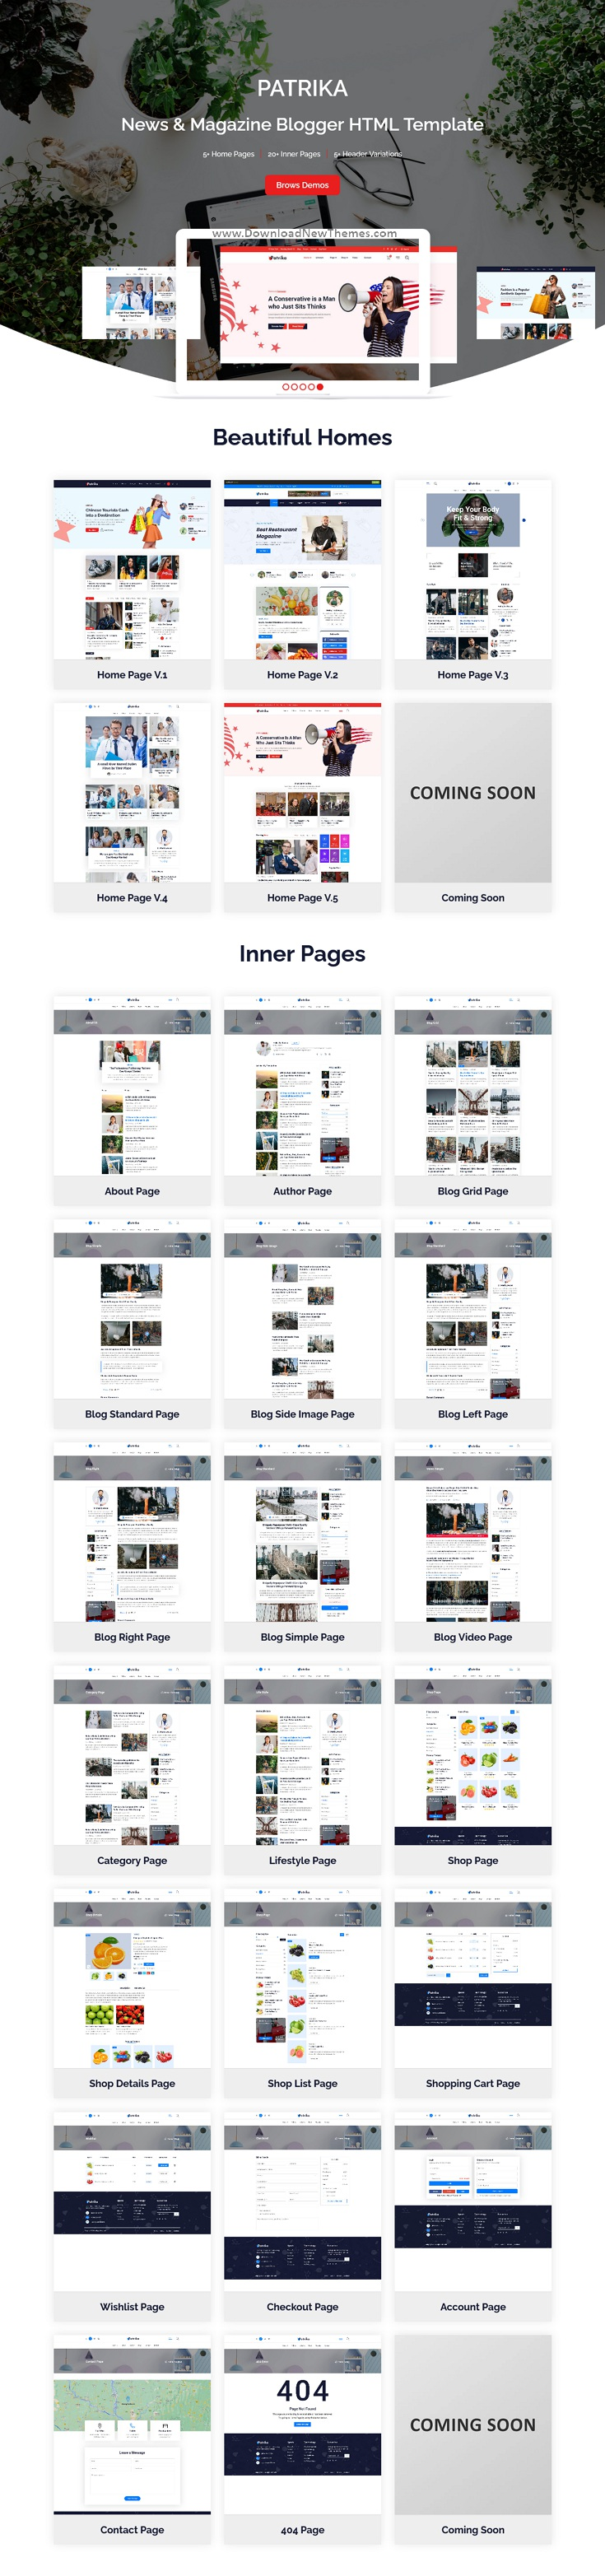 News and Magazine Blogger HTML Template